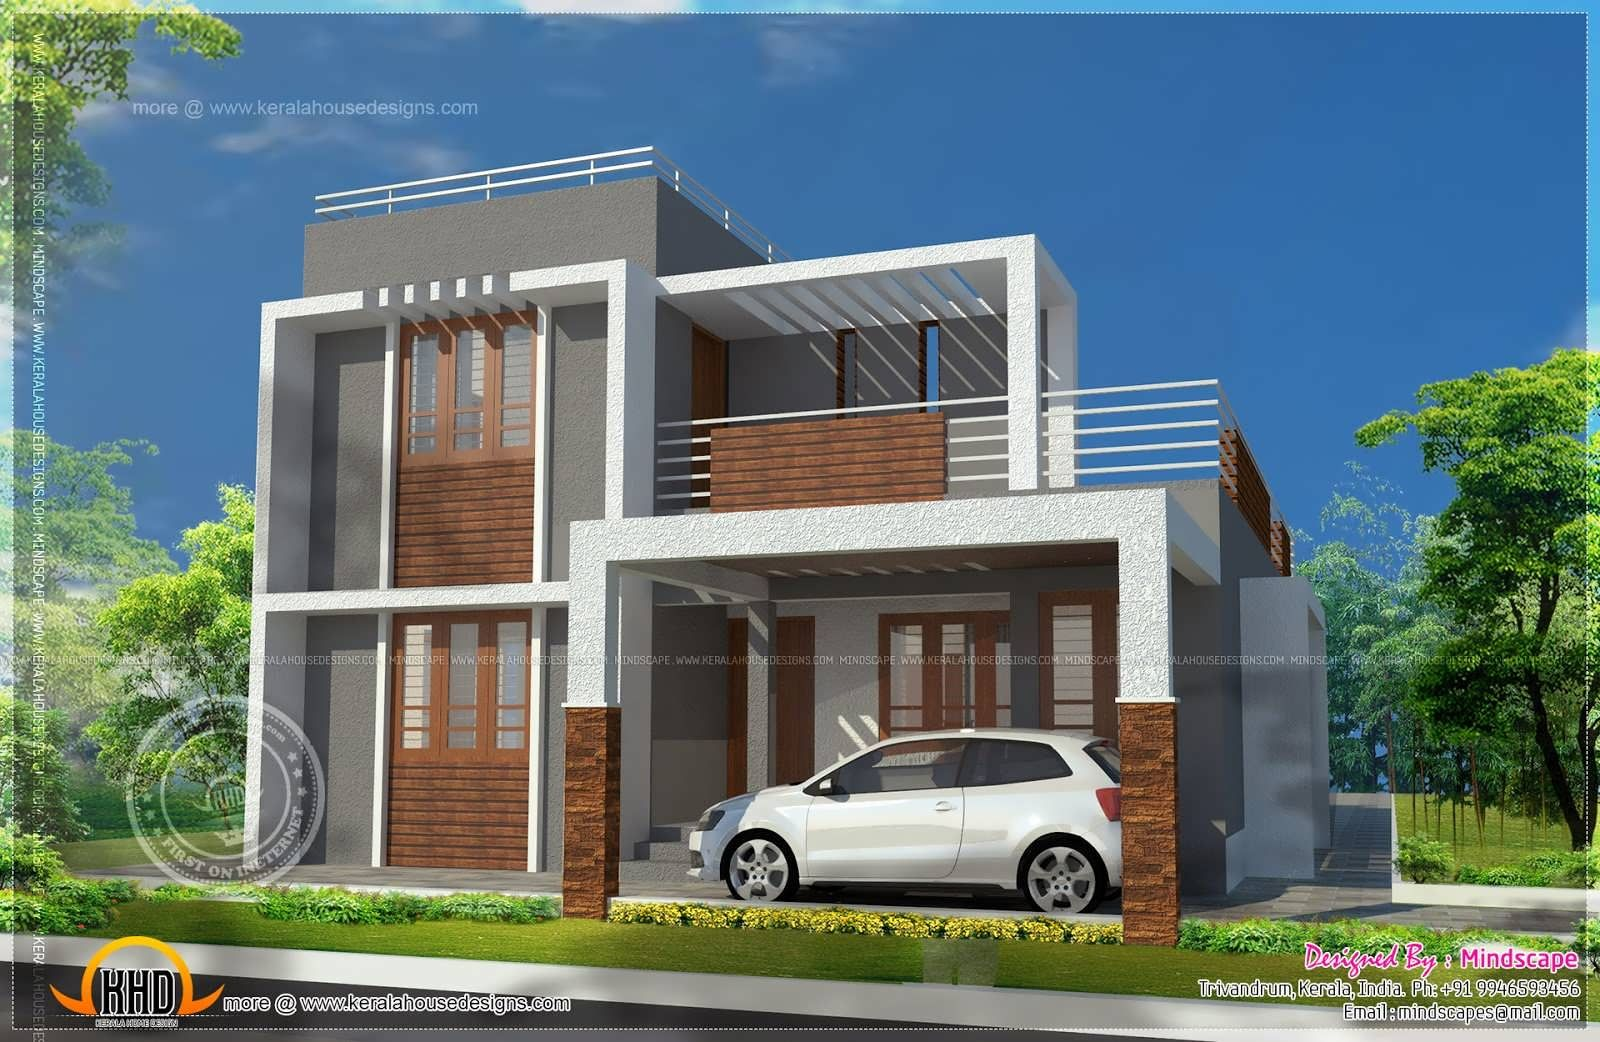 Awesome Small Double Storied Contemporary House Plan Indian Plans Home Design With  Luxury Building Home Gray Wall And Flat Roof With White Fence Also Wooden  Window ...